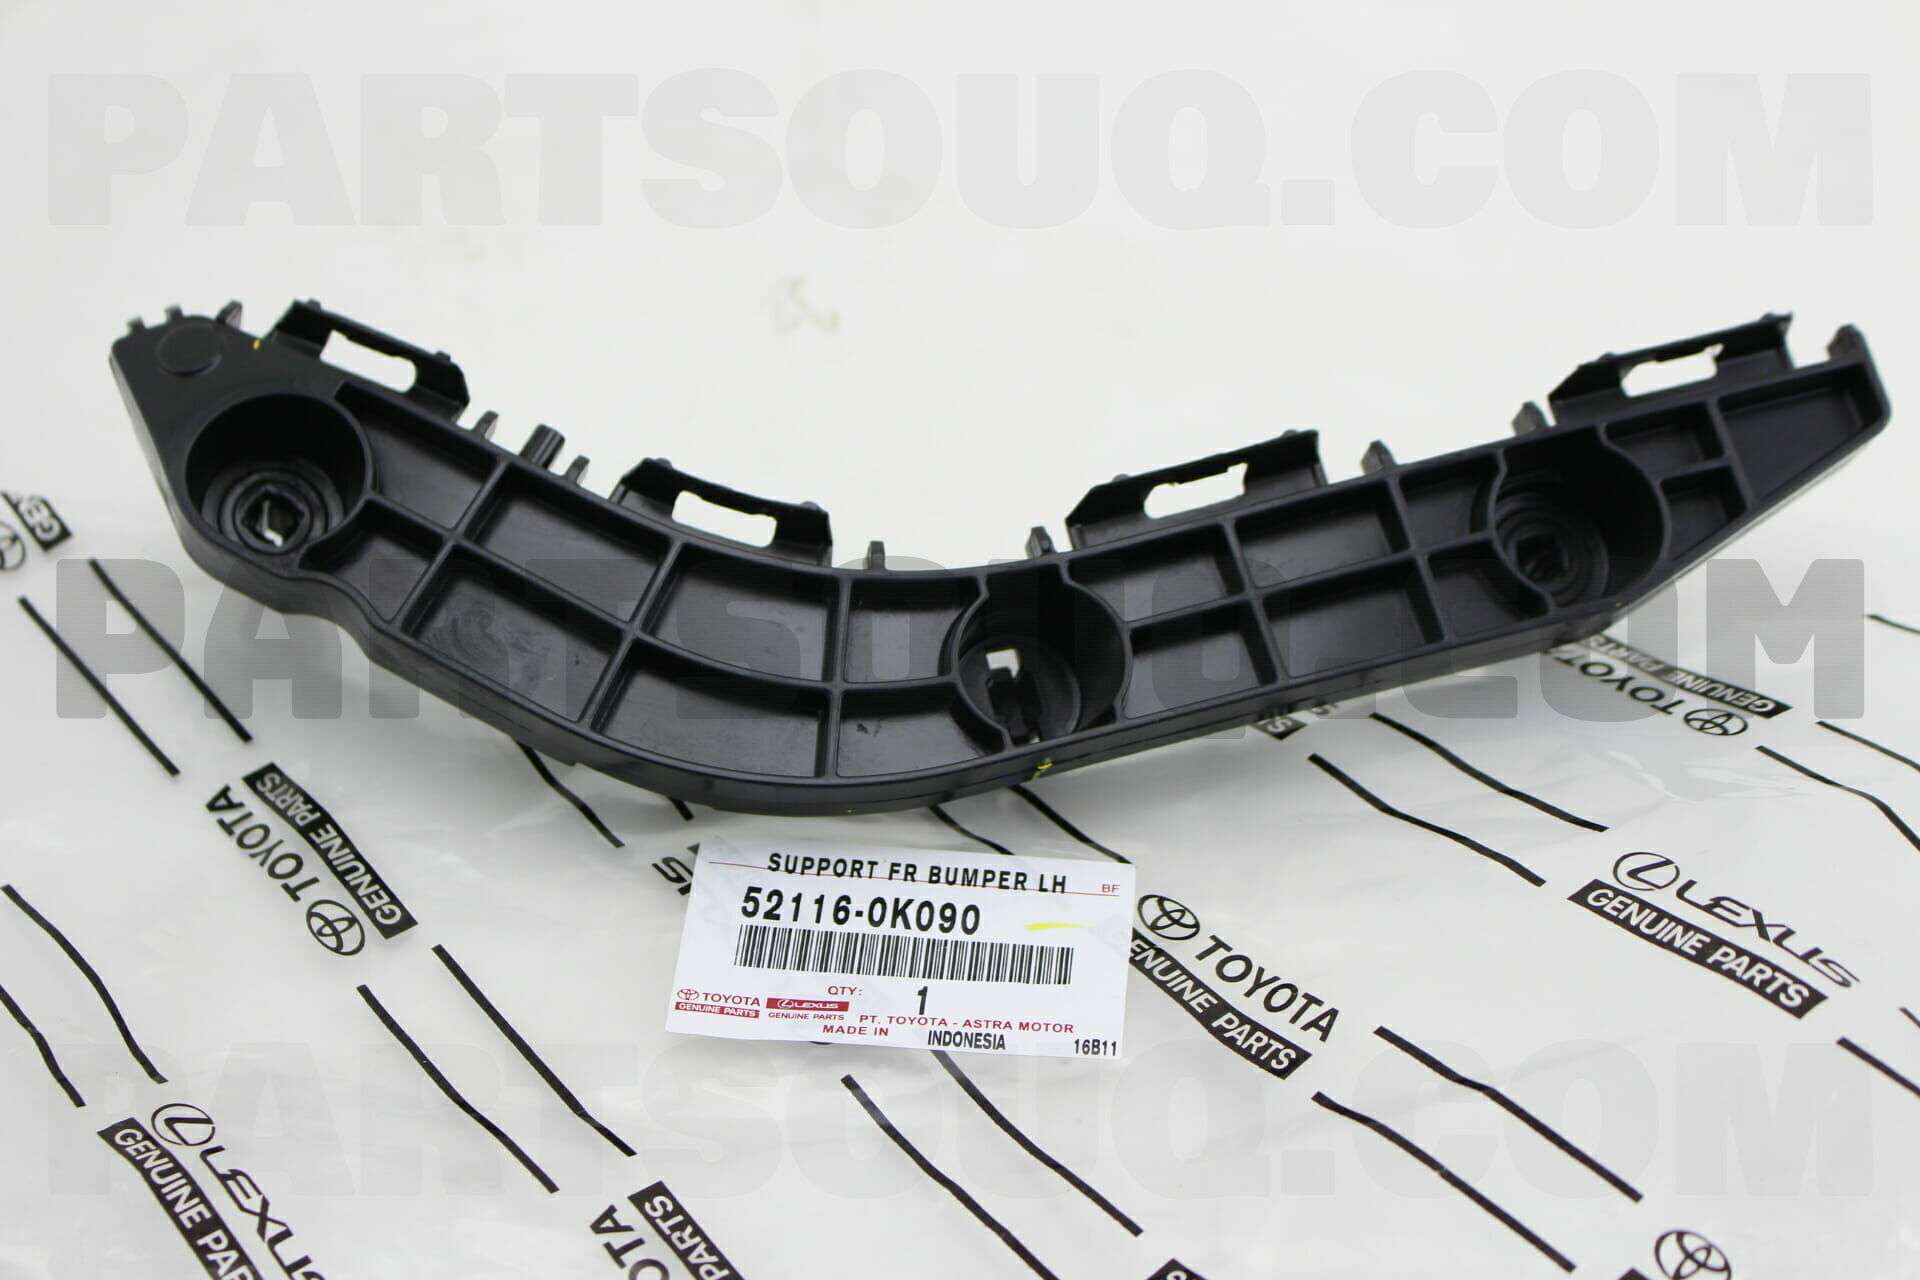 Toyota K090 SUPPORT FRONT BUMPER SIDE LH